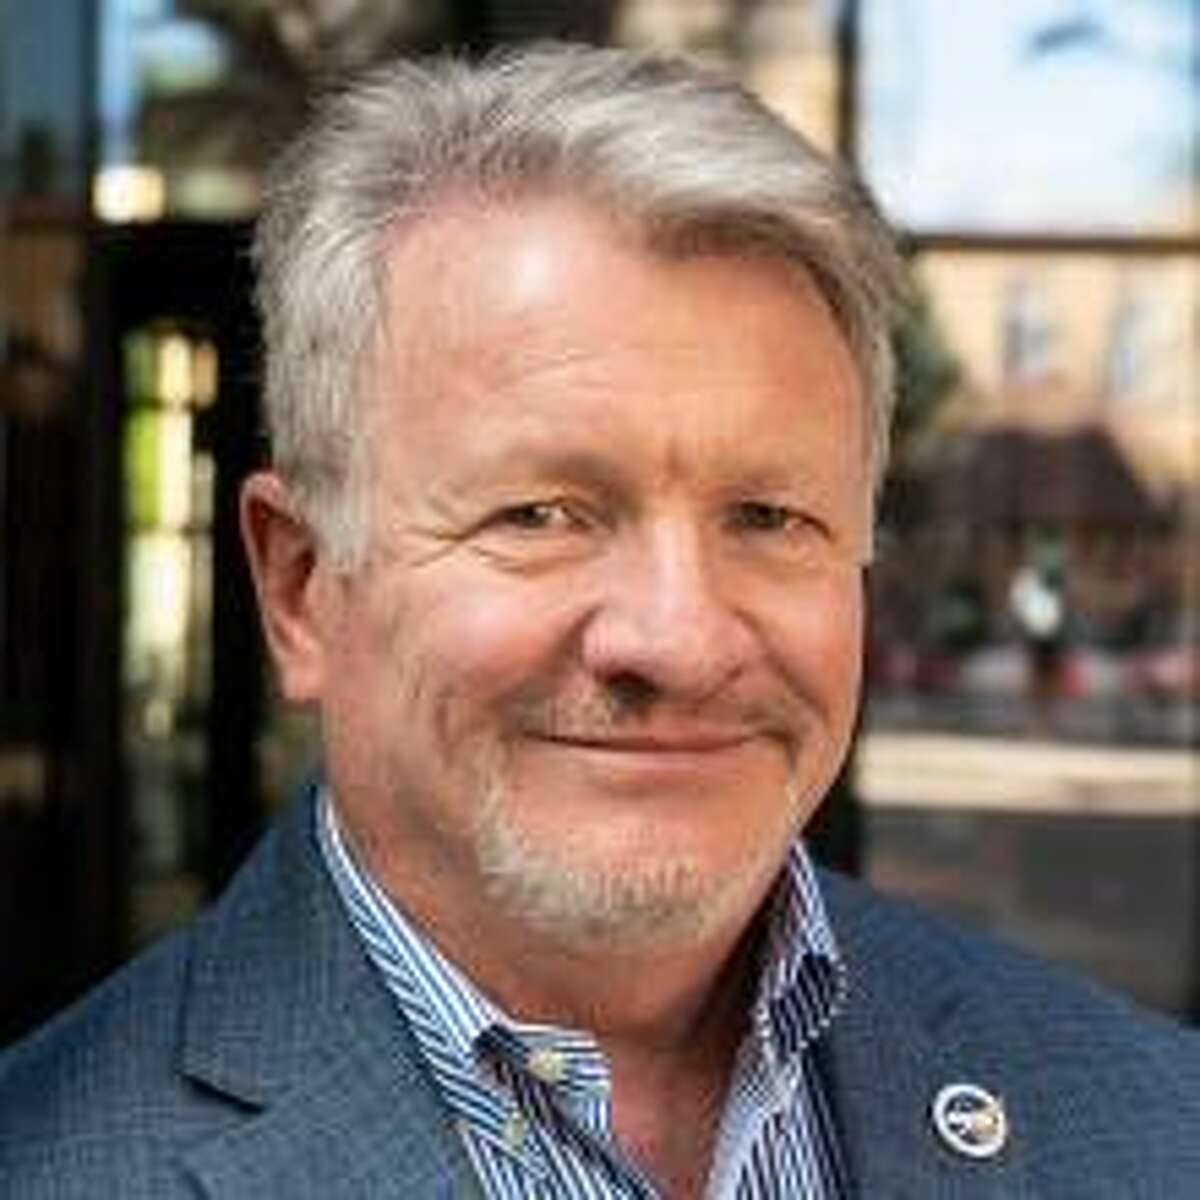 Bill Diamond, president and CEO of the SETI Institute